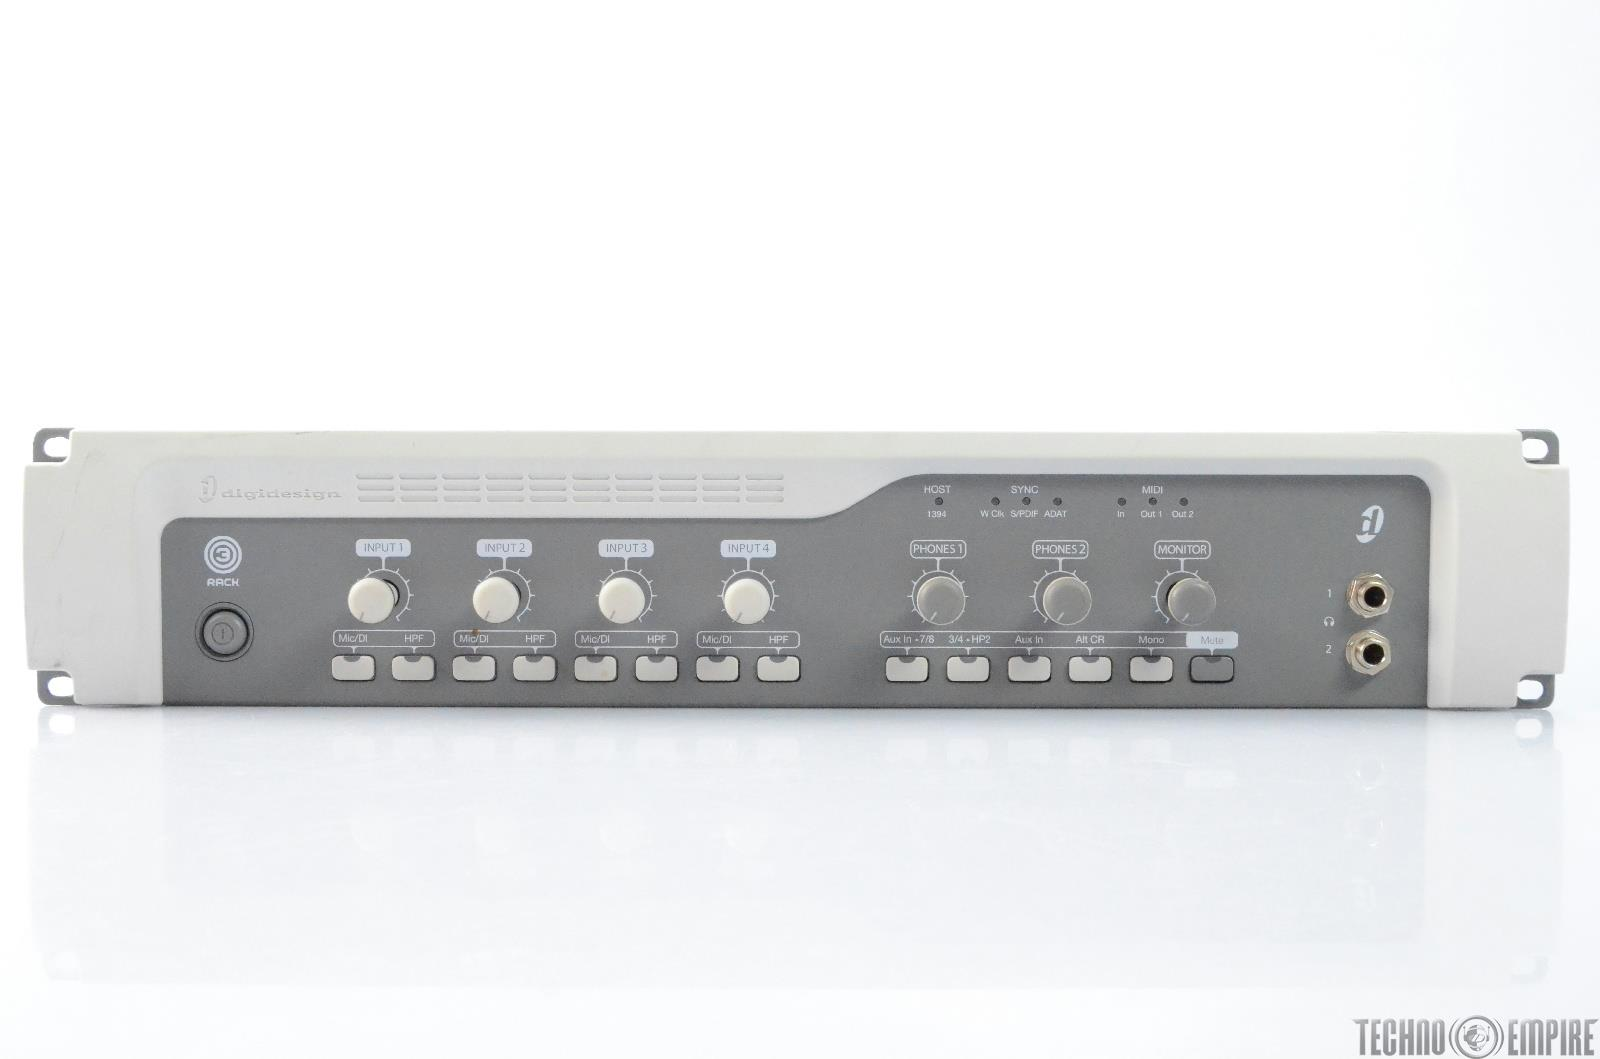 Digidesign 003 Rack Audio Recording Interface for Pro Tools #28460